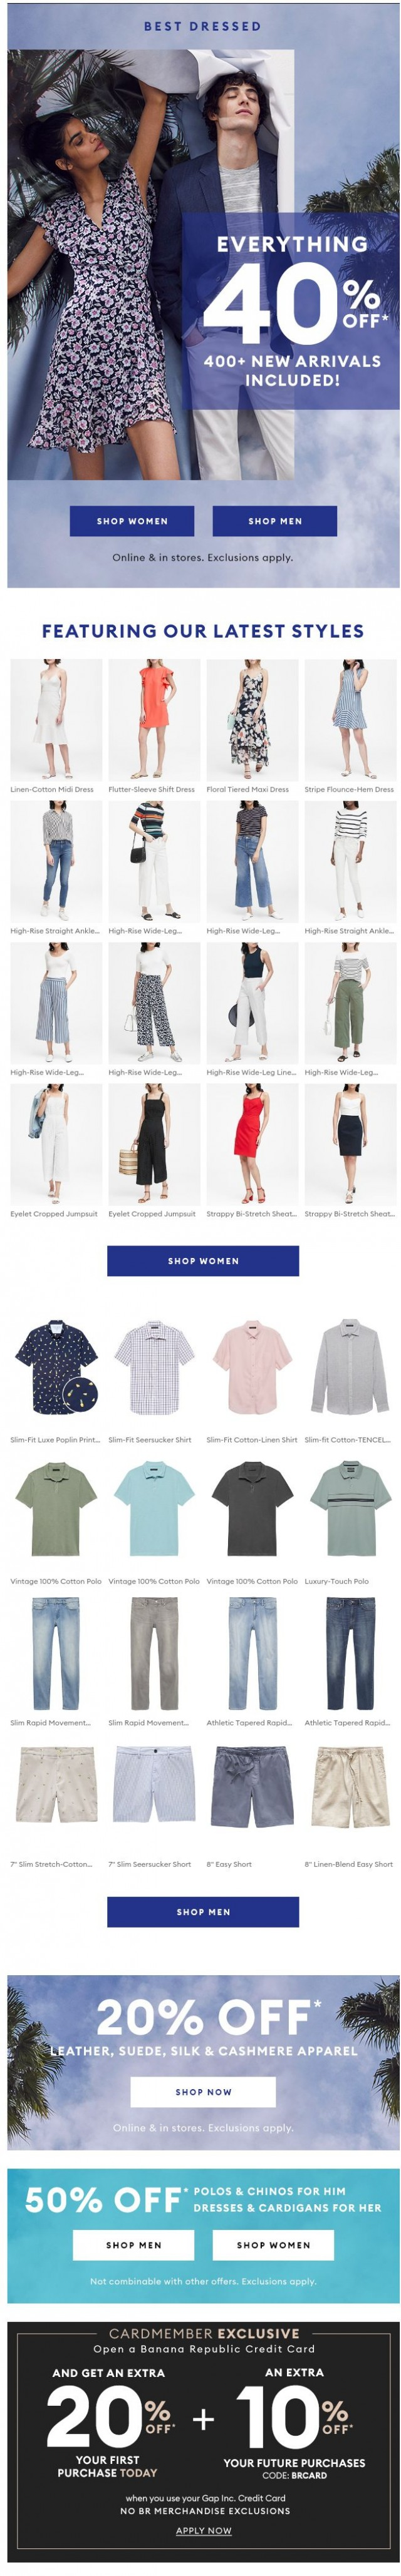 Coupon for: Banana Republic - 40% OFF EVERYTHING